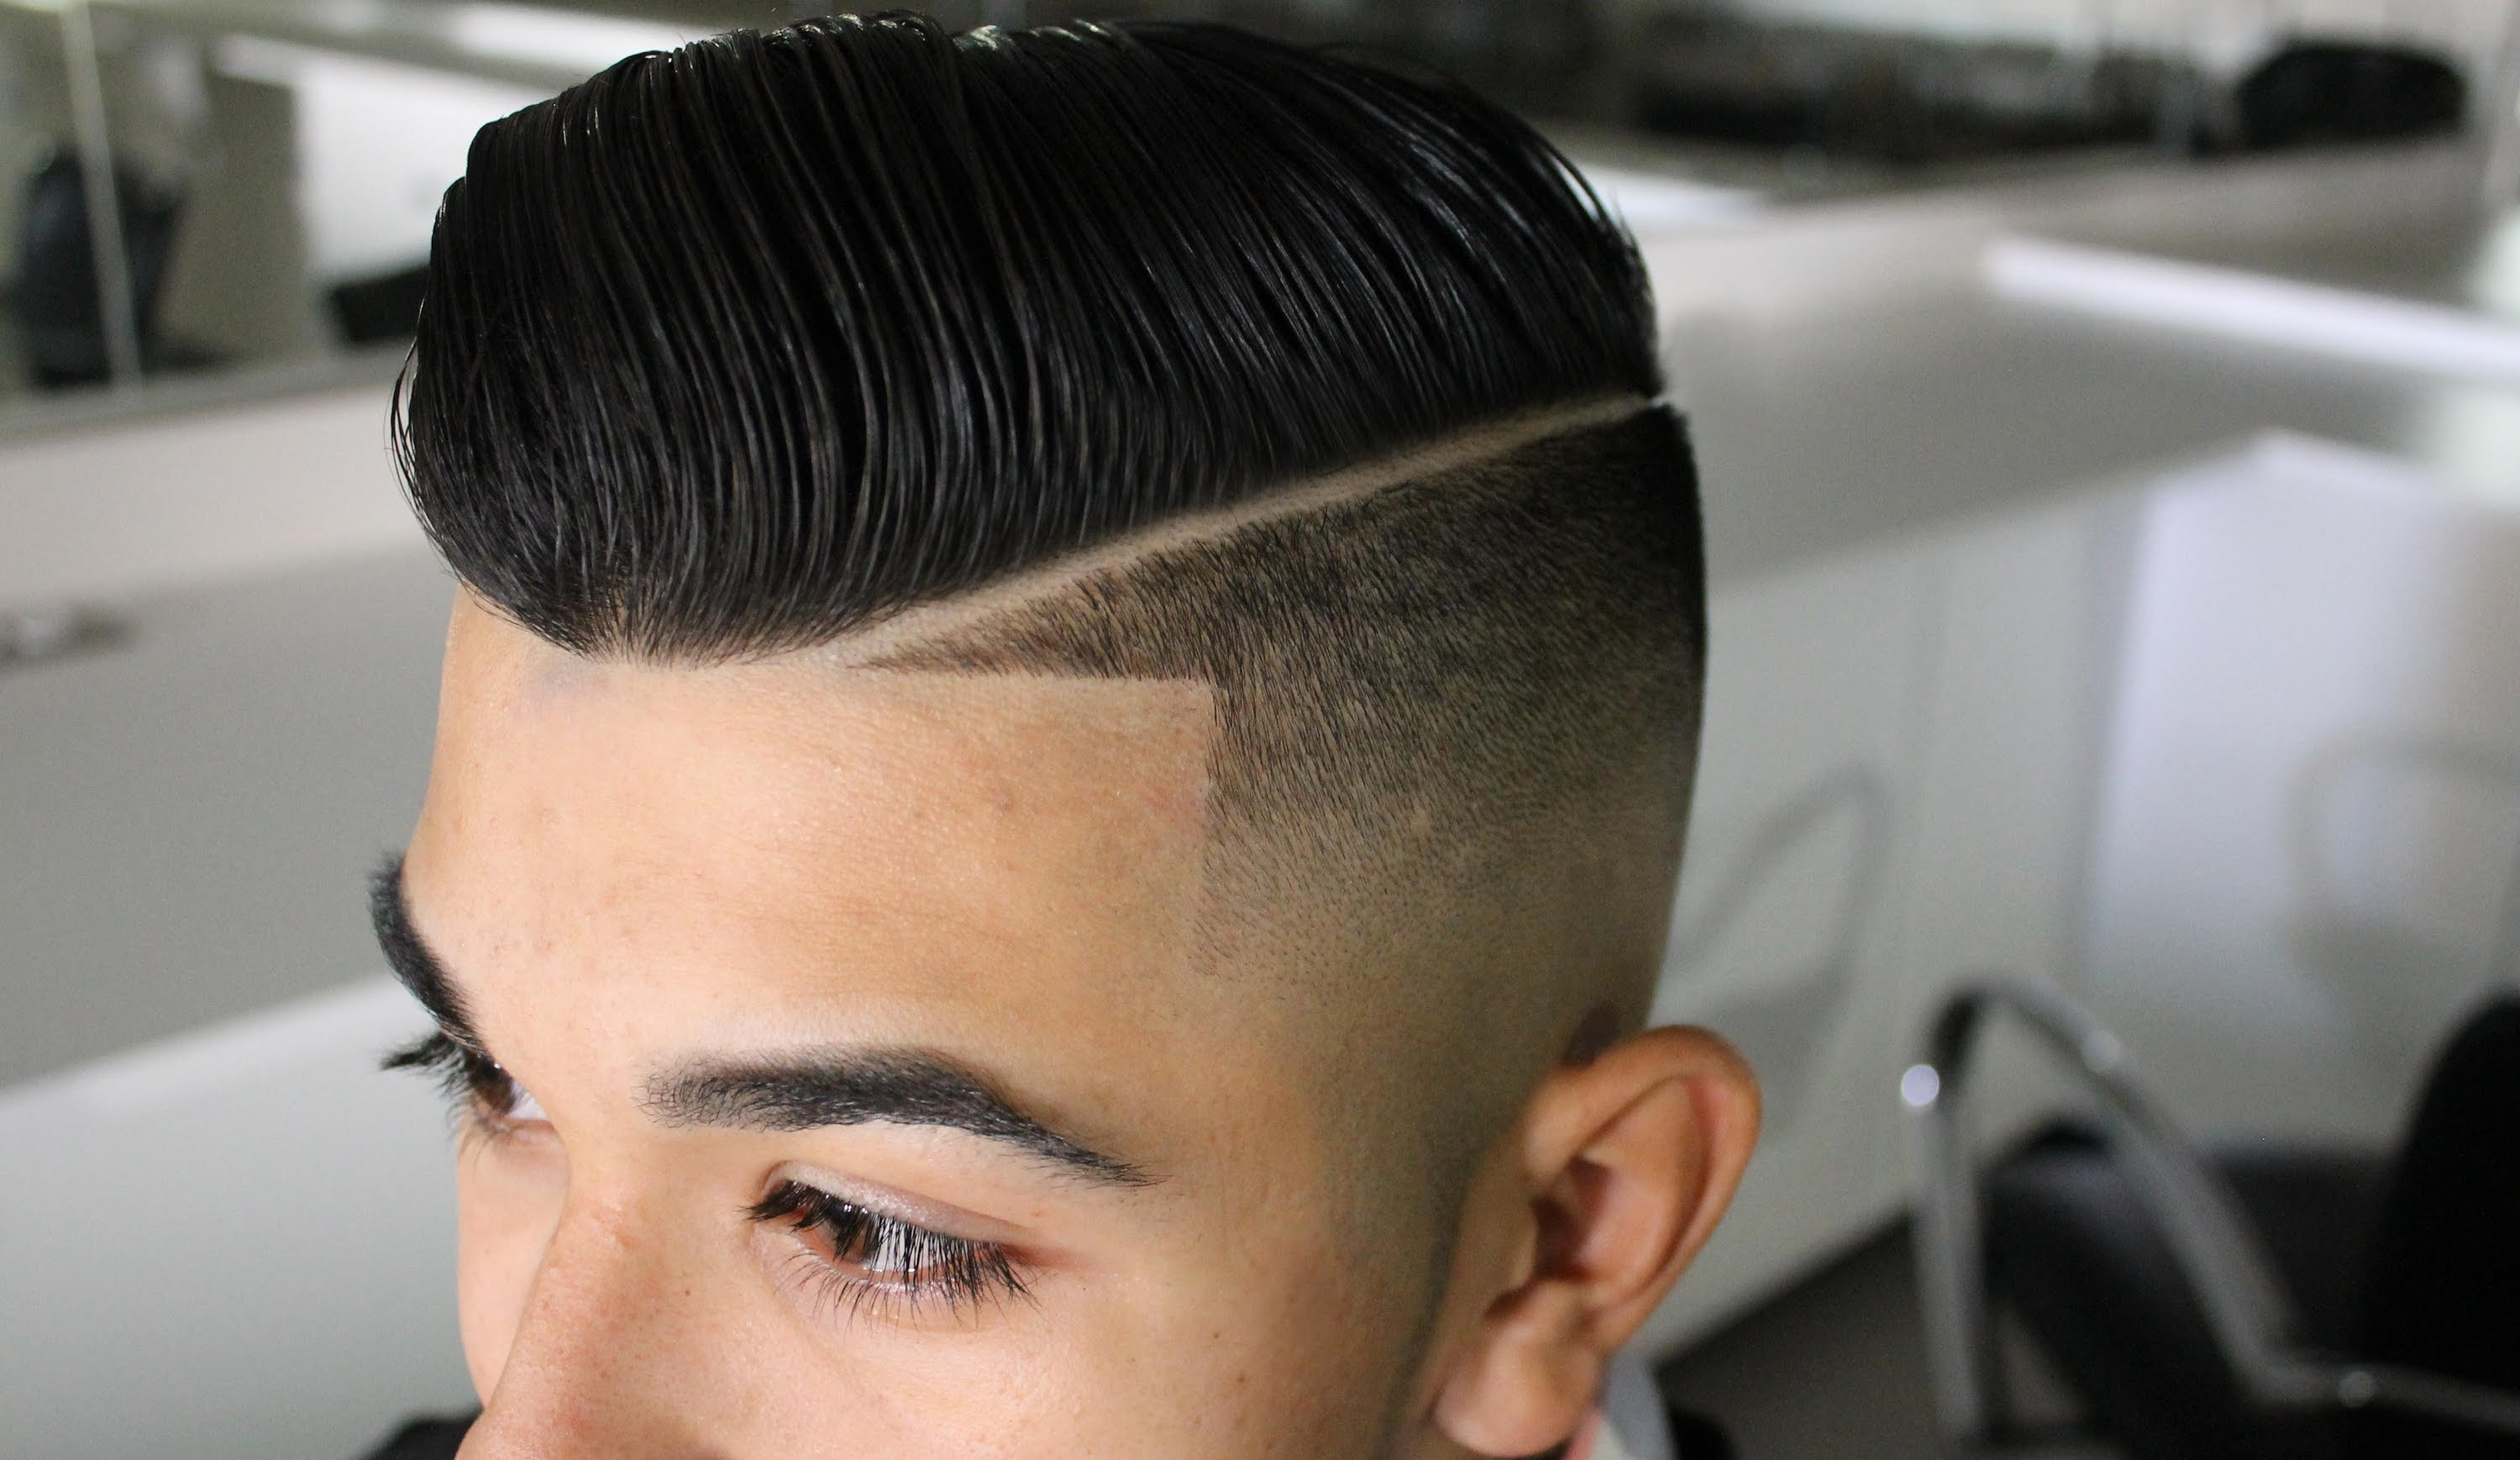 Mens Hairstyles and What to Ask For | Comb Over Haircut | How Much Pomade Should I Use